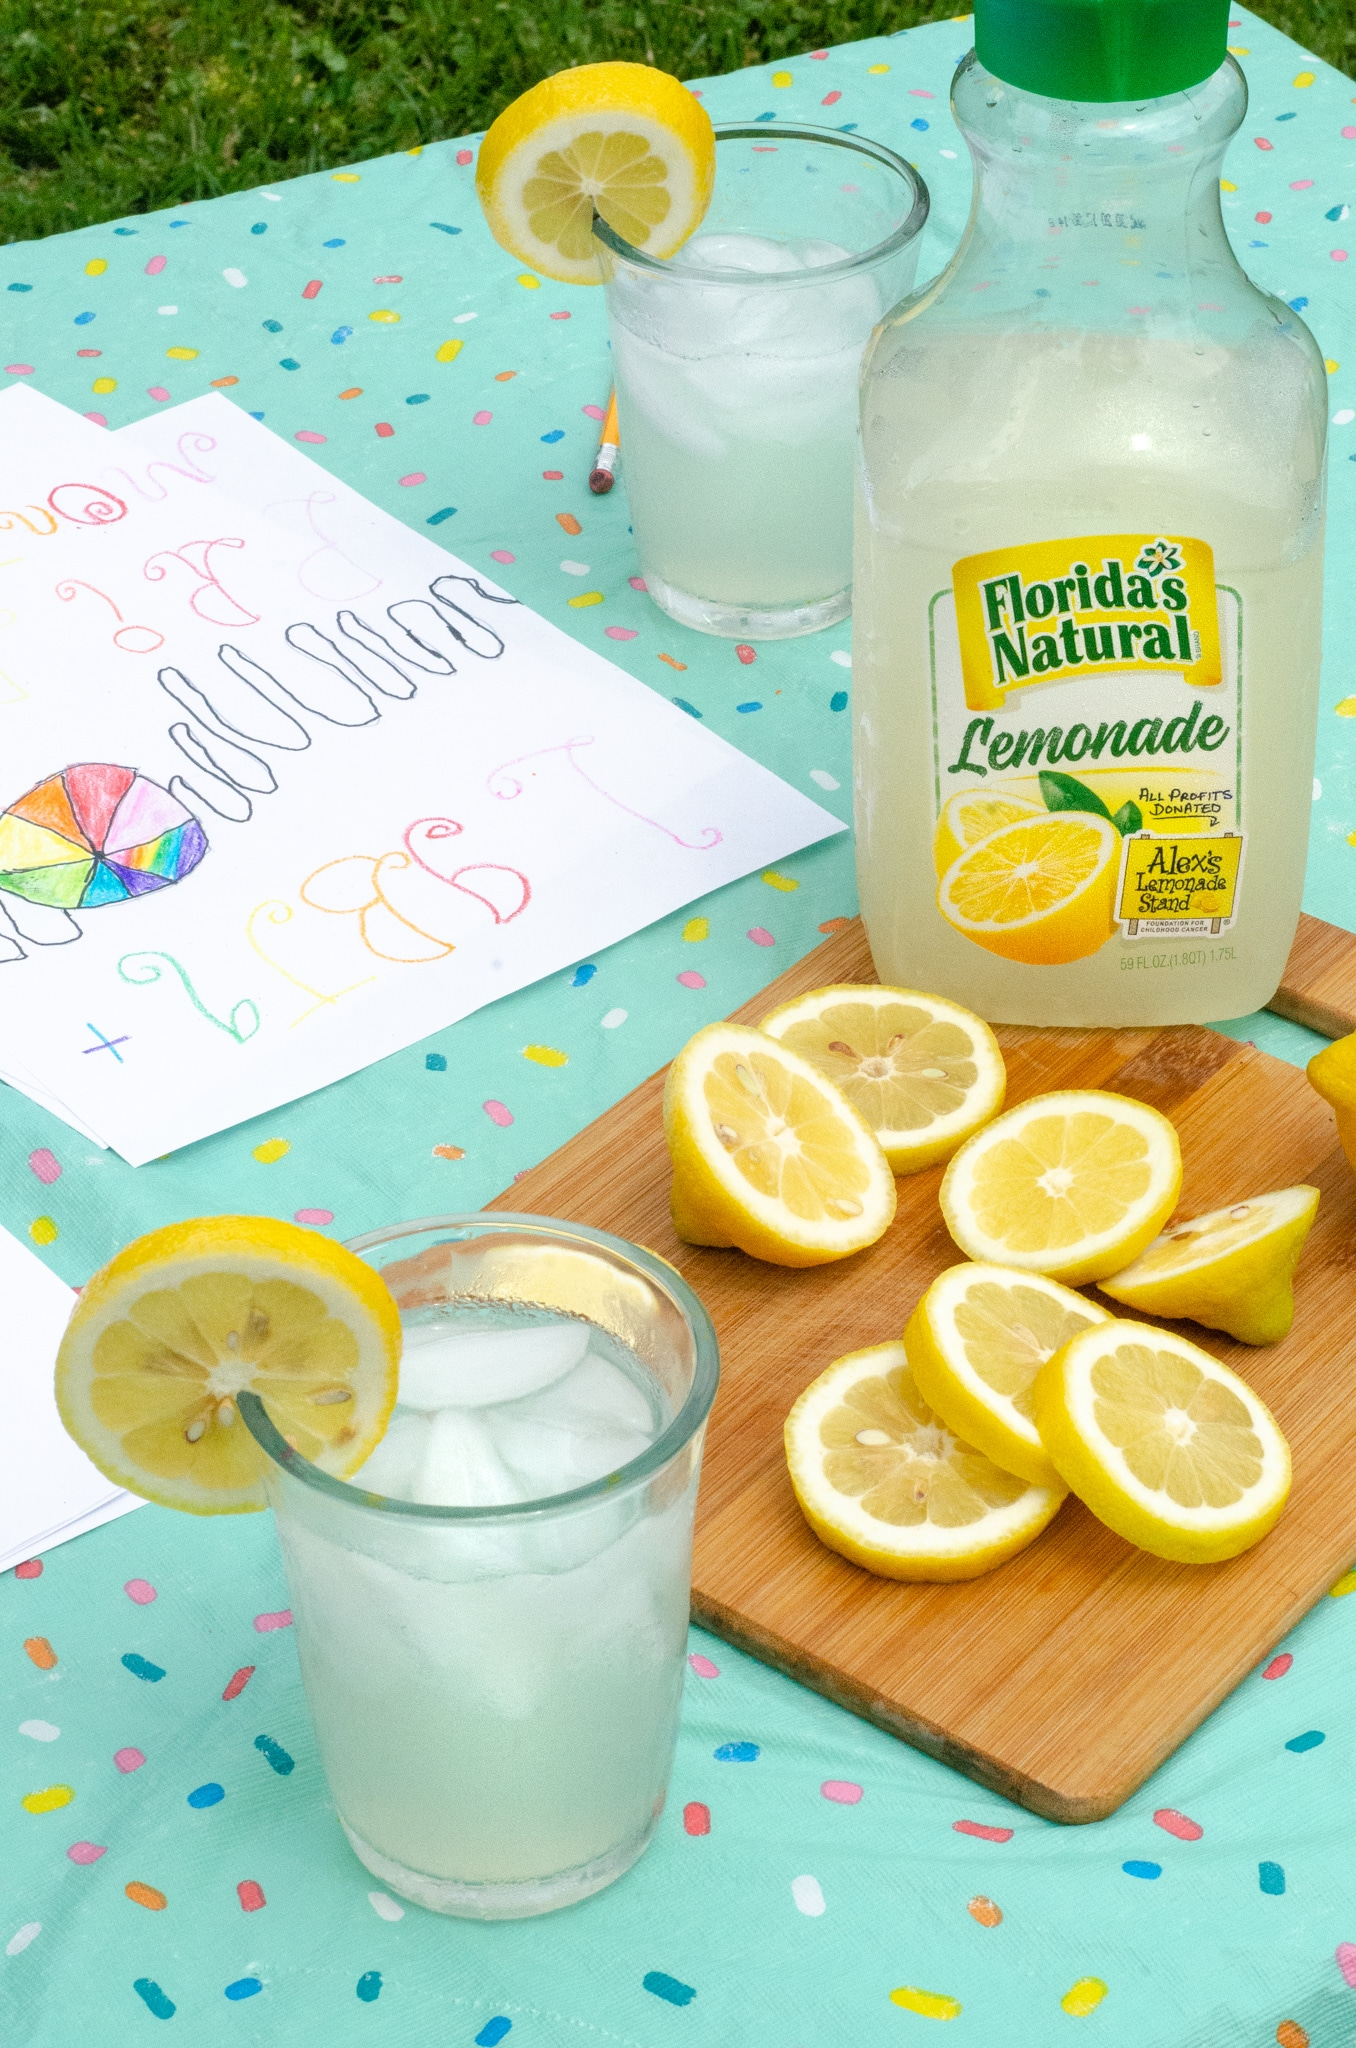 Lemonade Inspired Art Keturah Artwork. Looking for a fun way to keep the kids entertained this summer? Celebrate the start of summer with Lemonade-Inspired Art In the Backyard.